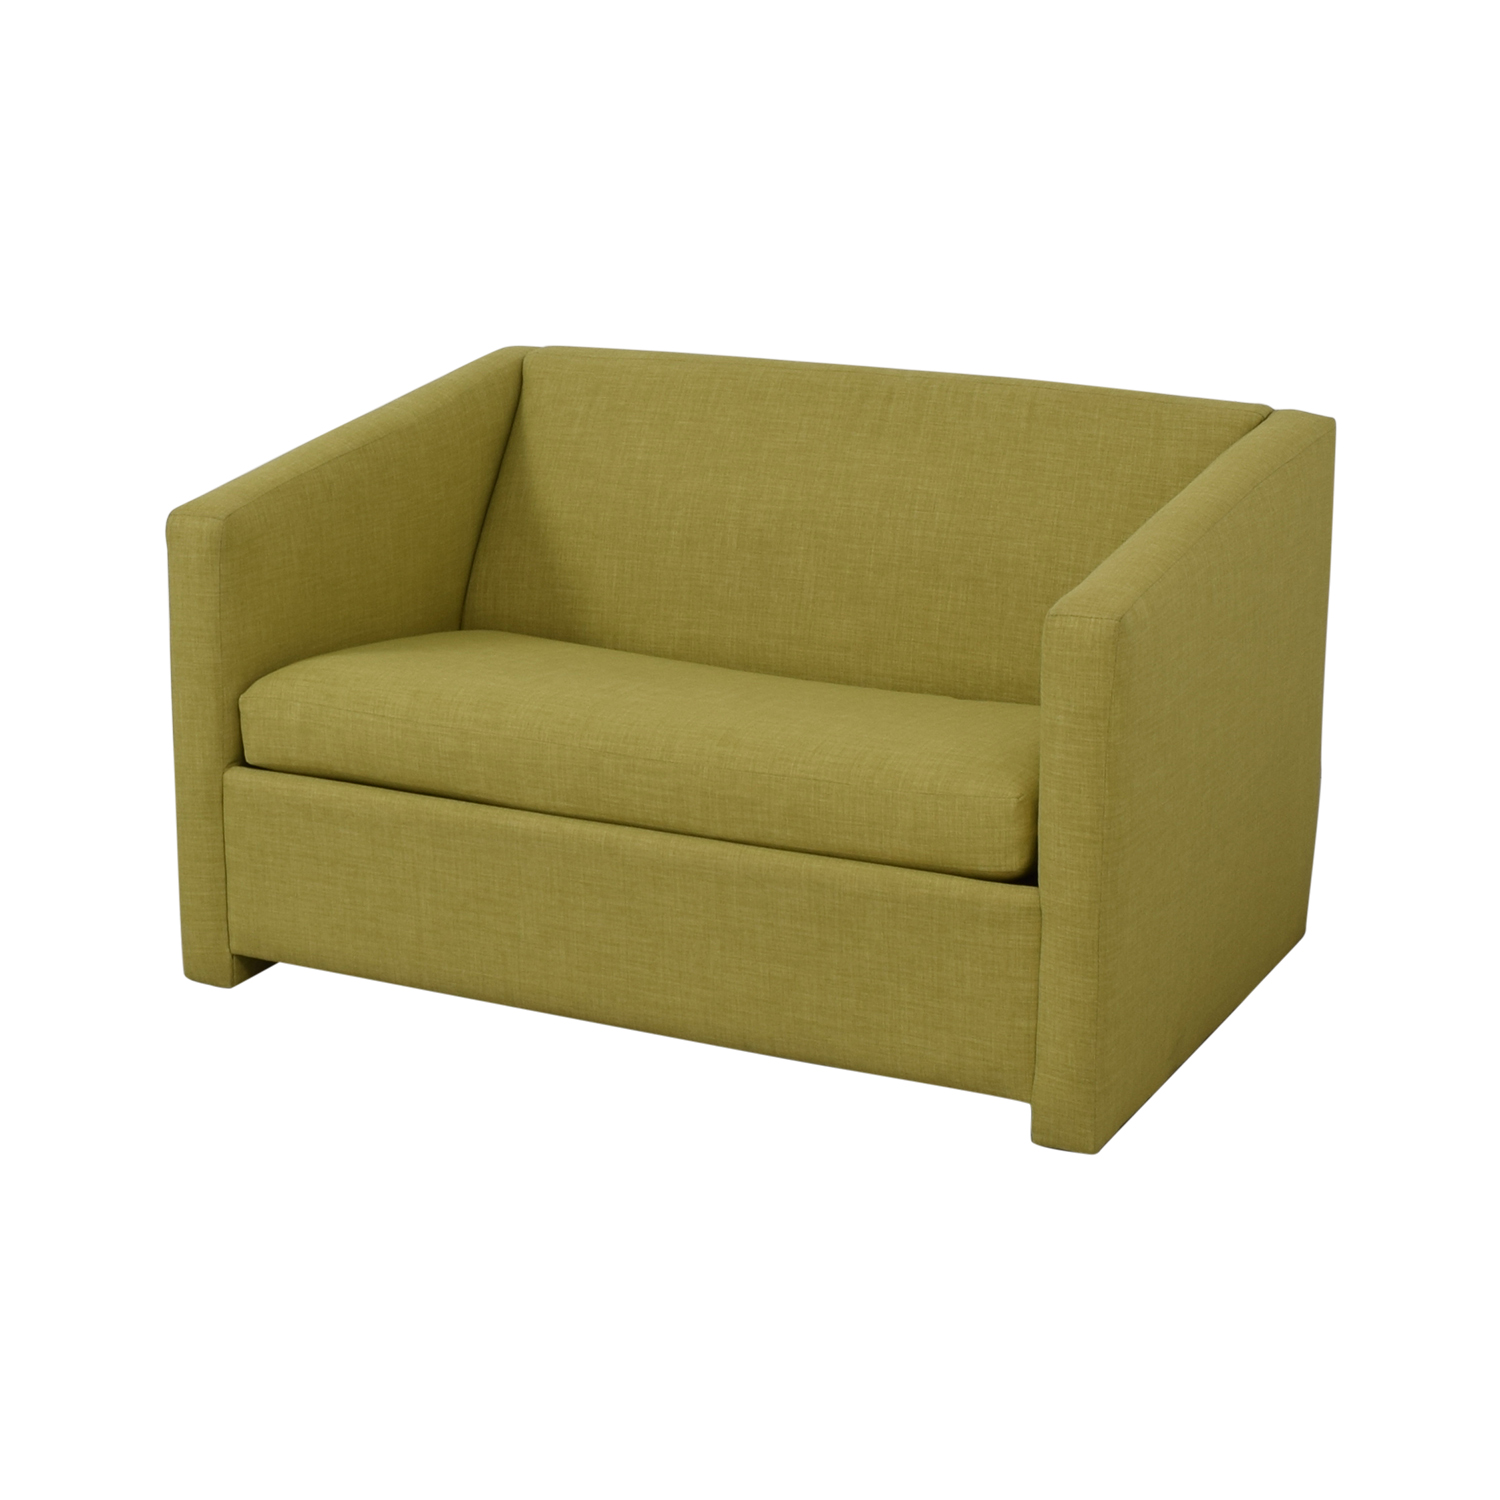 CB2 CB2 Lime Green Loveseat with Pullout Bed on sale